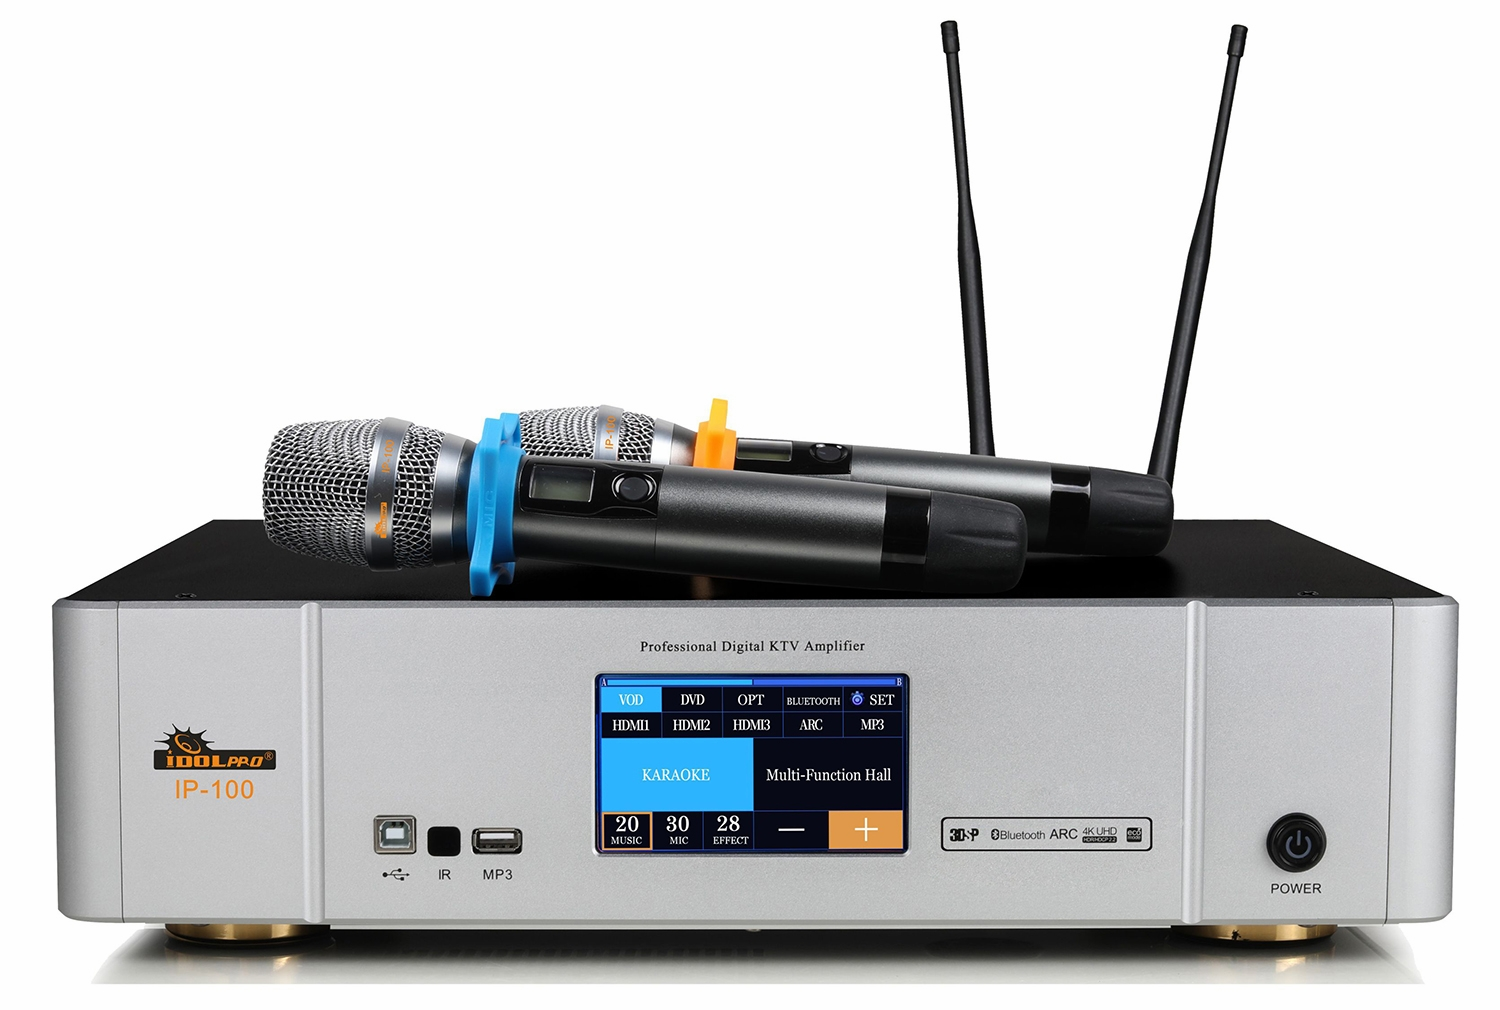 "IDOlpro IP-100  Touch Screen Monitor Professional Digital Amplifier Equipped With Dual Wireless Microphones, DSP Sound Professor, Optical/HDMI/Bluetooth/Sub Output <b><font color="" orange"">NEW 2021 </font> </b>"